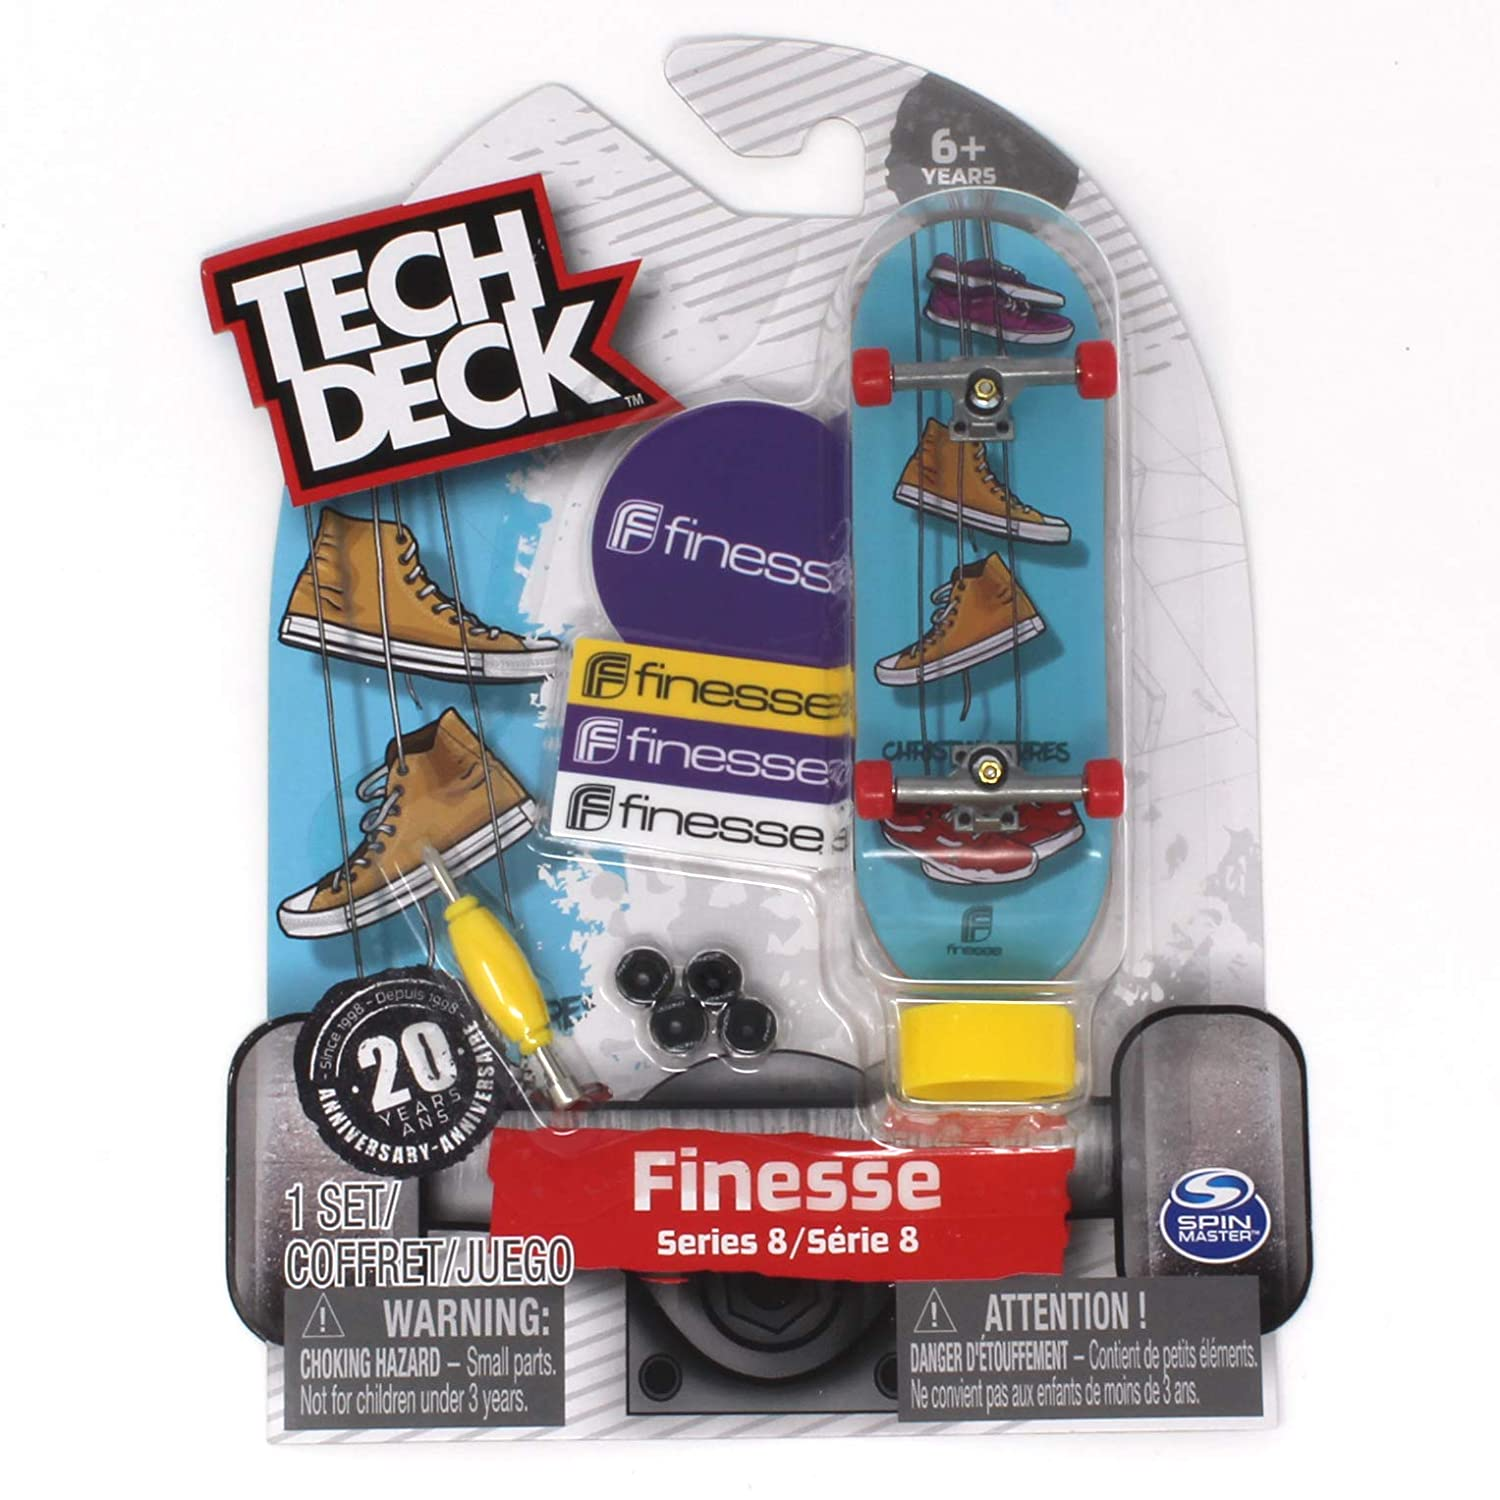 Tech Deck Finesse Skateboards Rare Series 8 Christian Flores Hanging Shoes Fingerboard 20094606